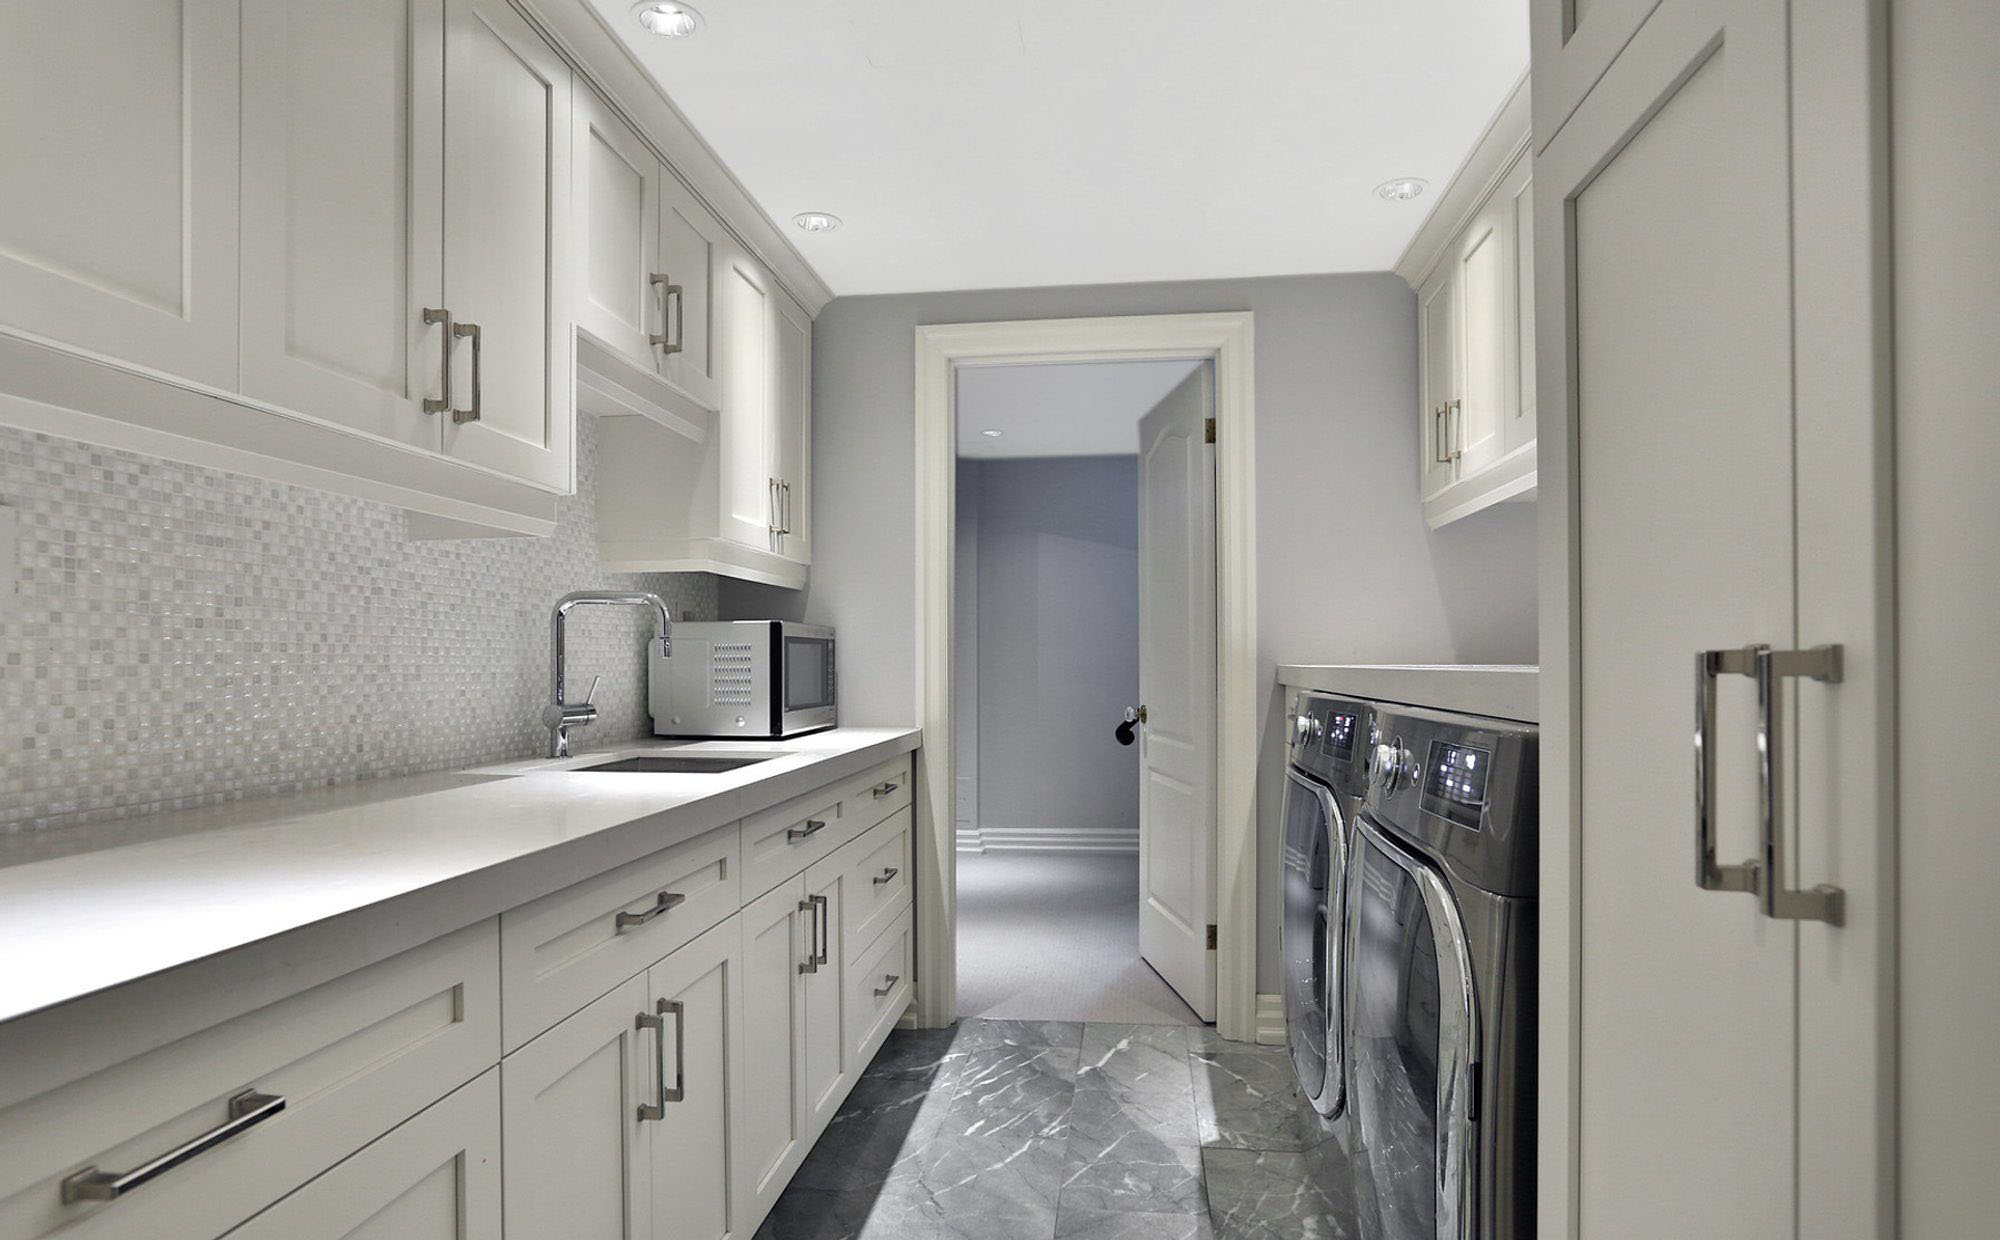 Laundry room with a grey and white backsplash made from small 1/2 inch tiles.